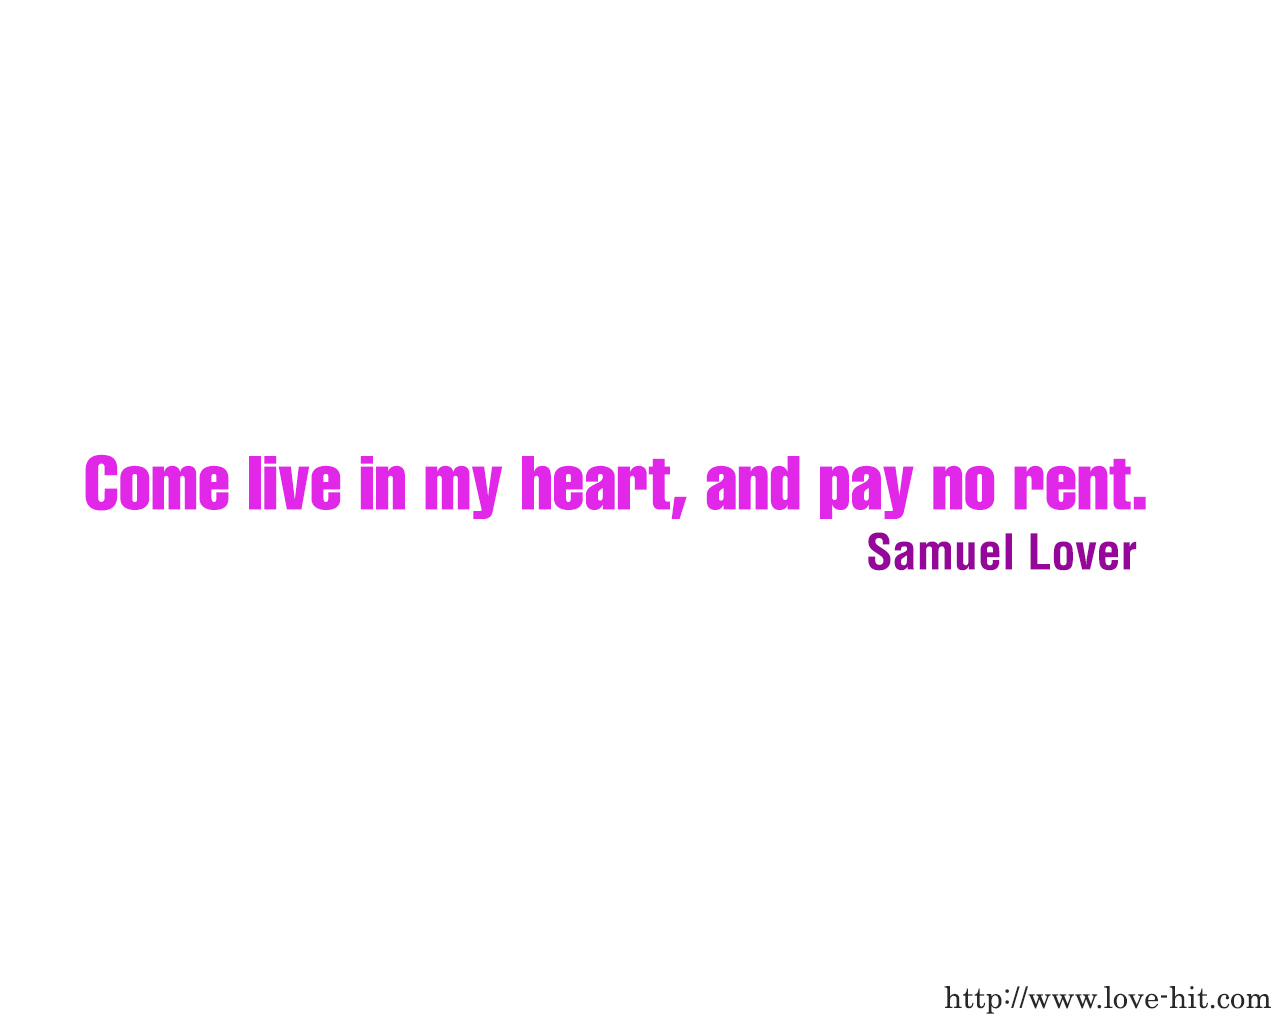 Come live in my heart, and pay no rent